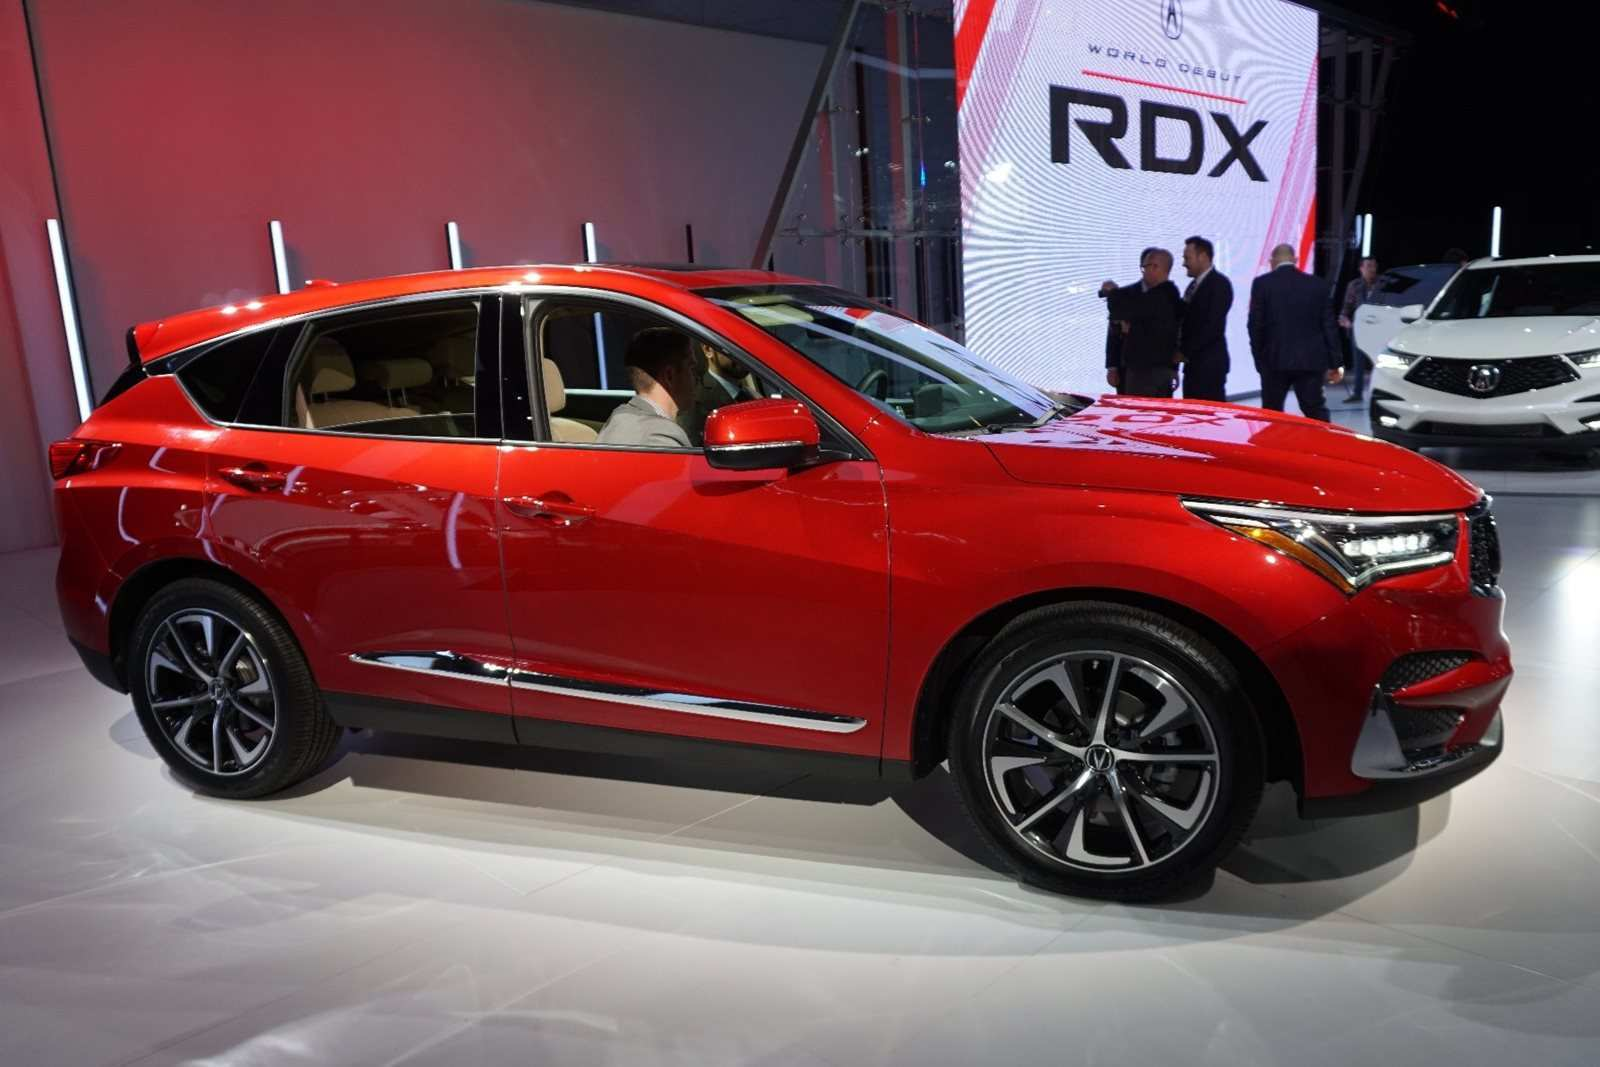 18 New The Acura Rdx 2019 Release Date Usa Spy Shoot Spy Shoot by The Acura Rdx 2019 Release Date Usa Spy Shoot